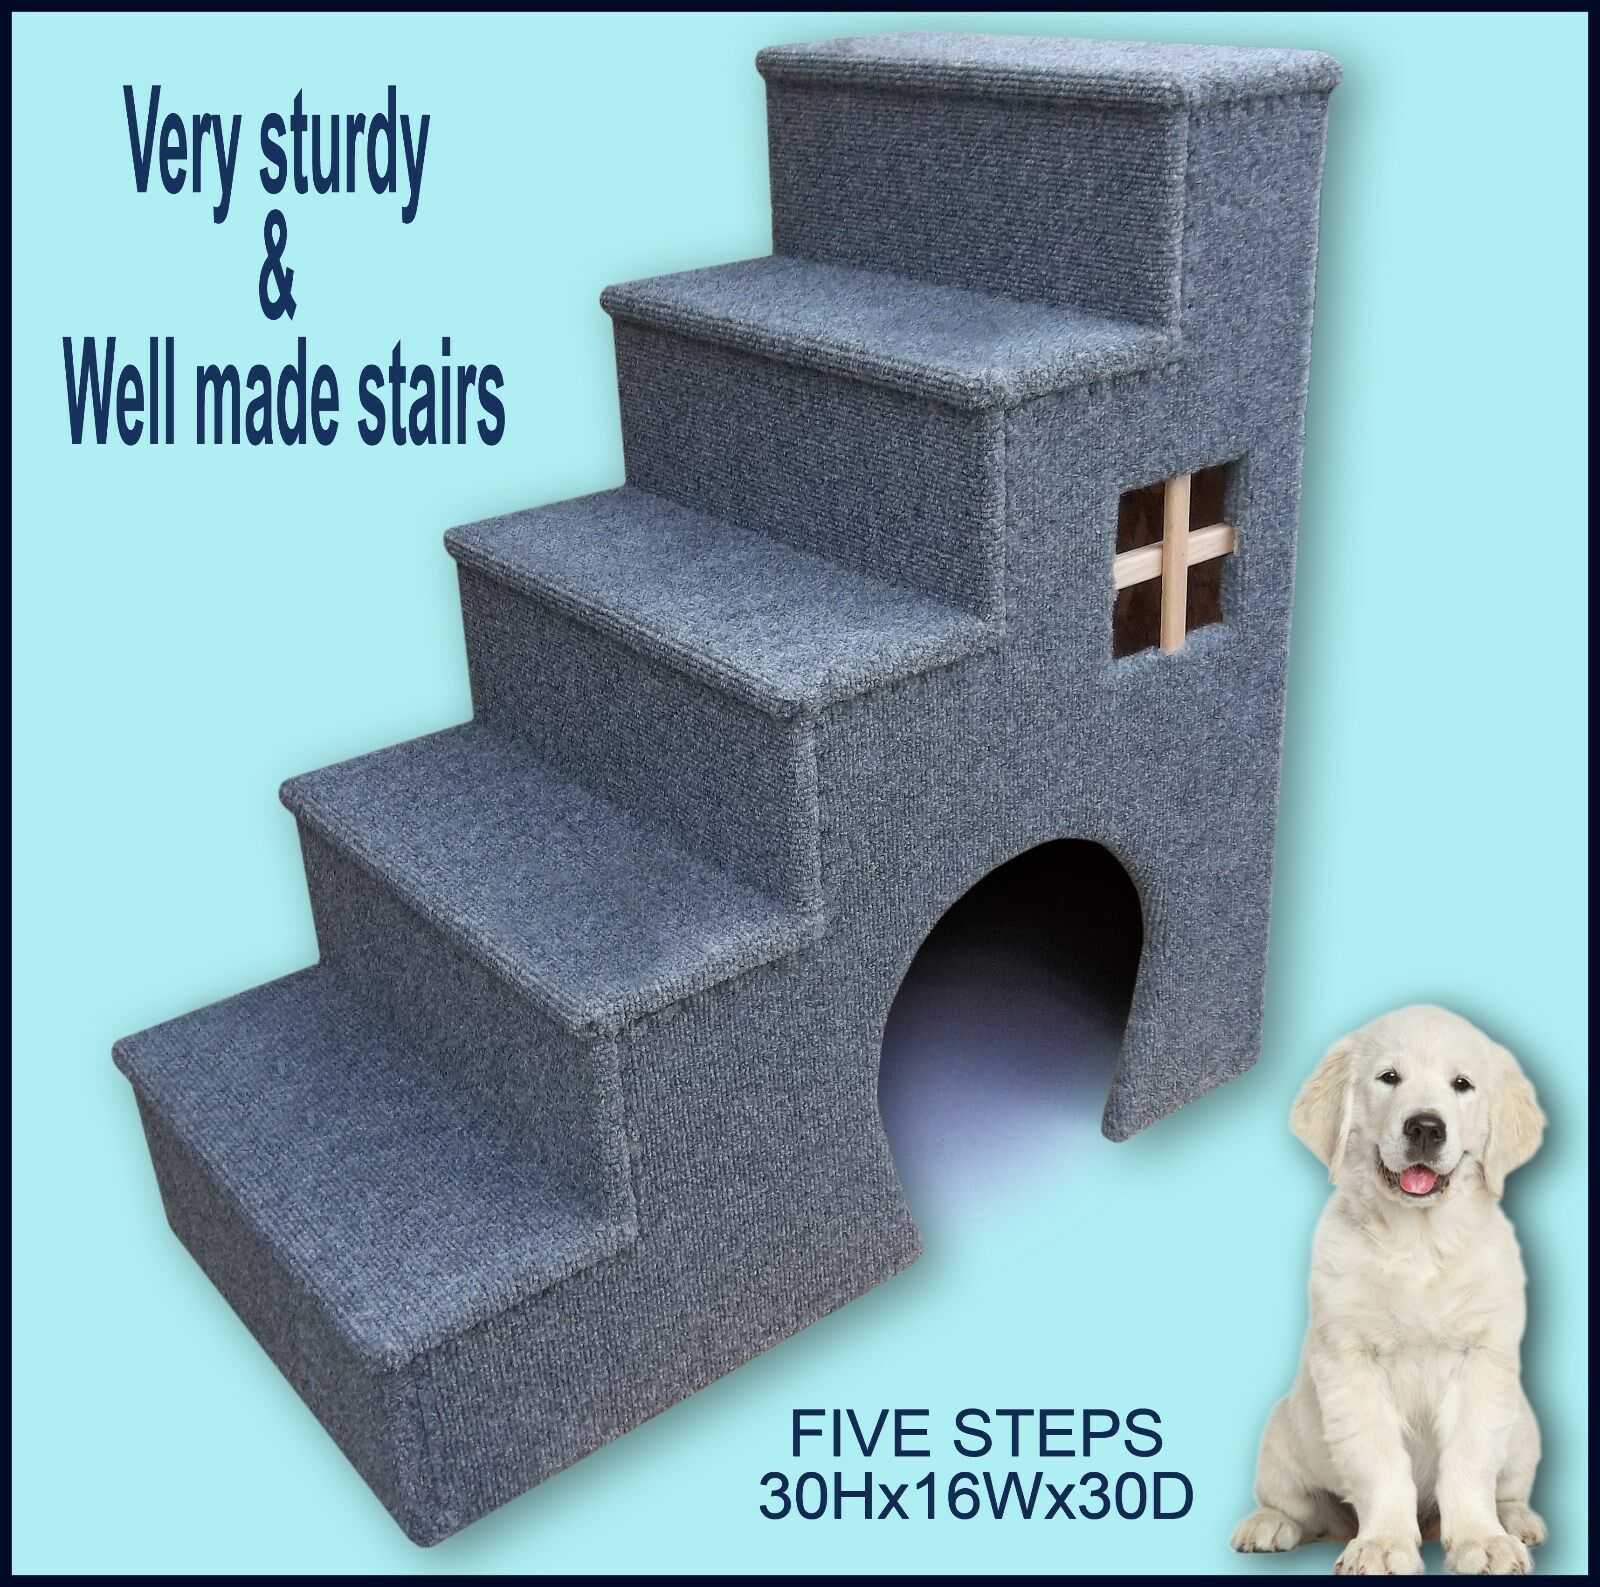 Dog stairs. Dog Supplies, Dogs steps. 30 H x 16 W x 30 D. Dog steps for bed.